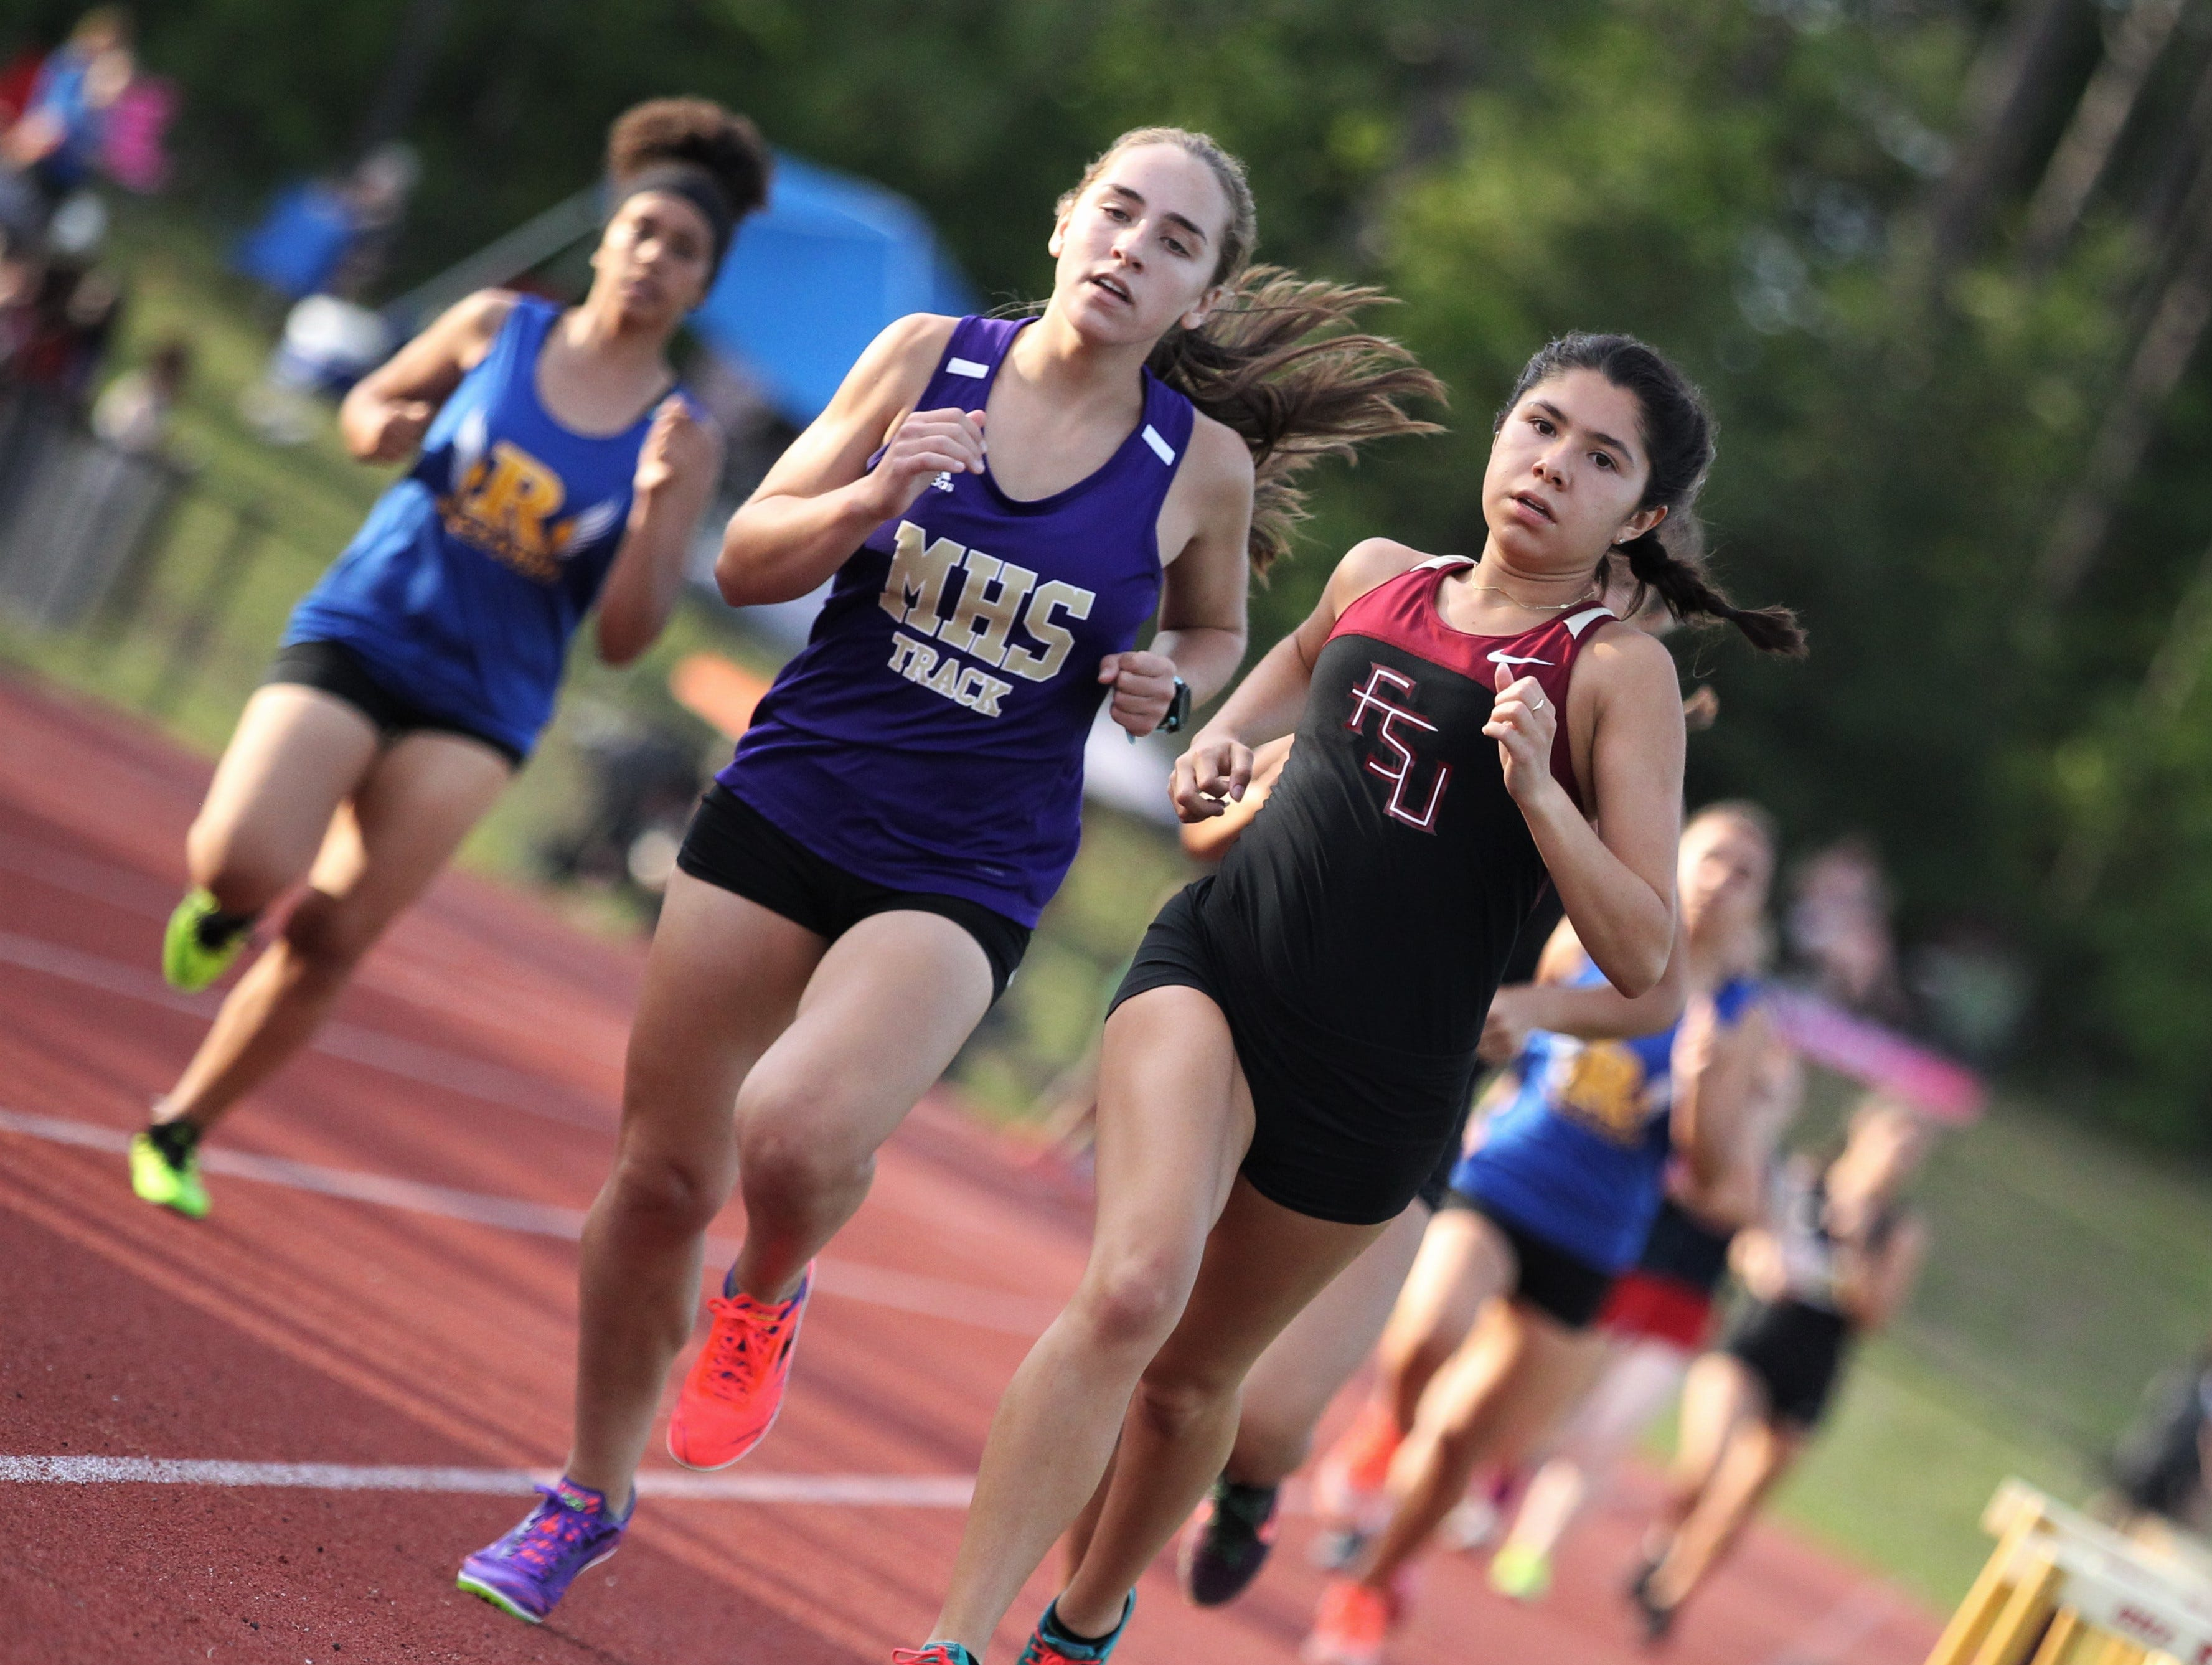 Florida High senior Summer Williams races during the District 3-1A and 2-2A track and field meets at Florida High on Saturday, April 13, 2019.